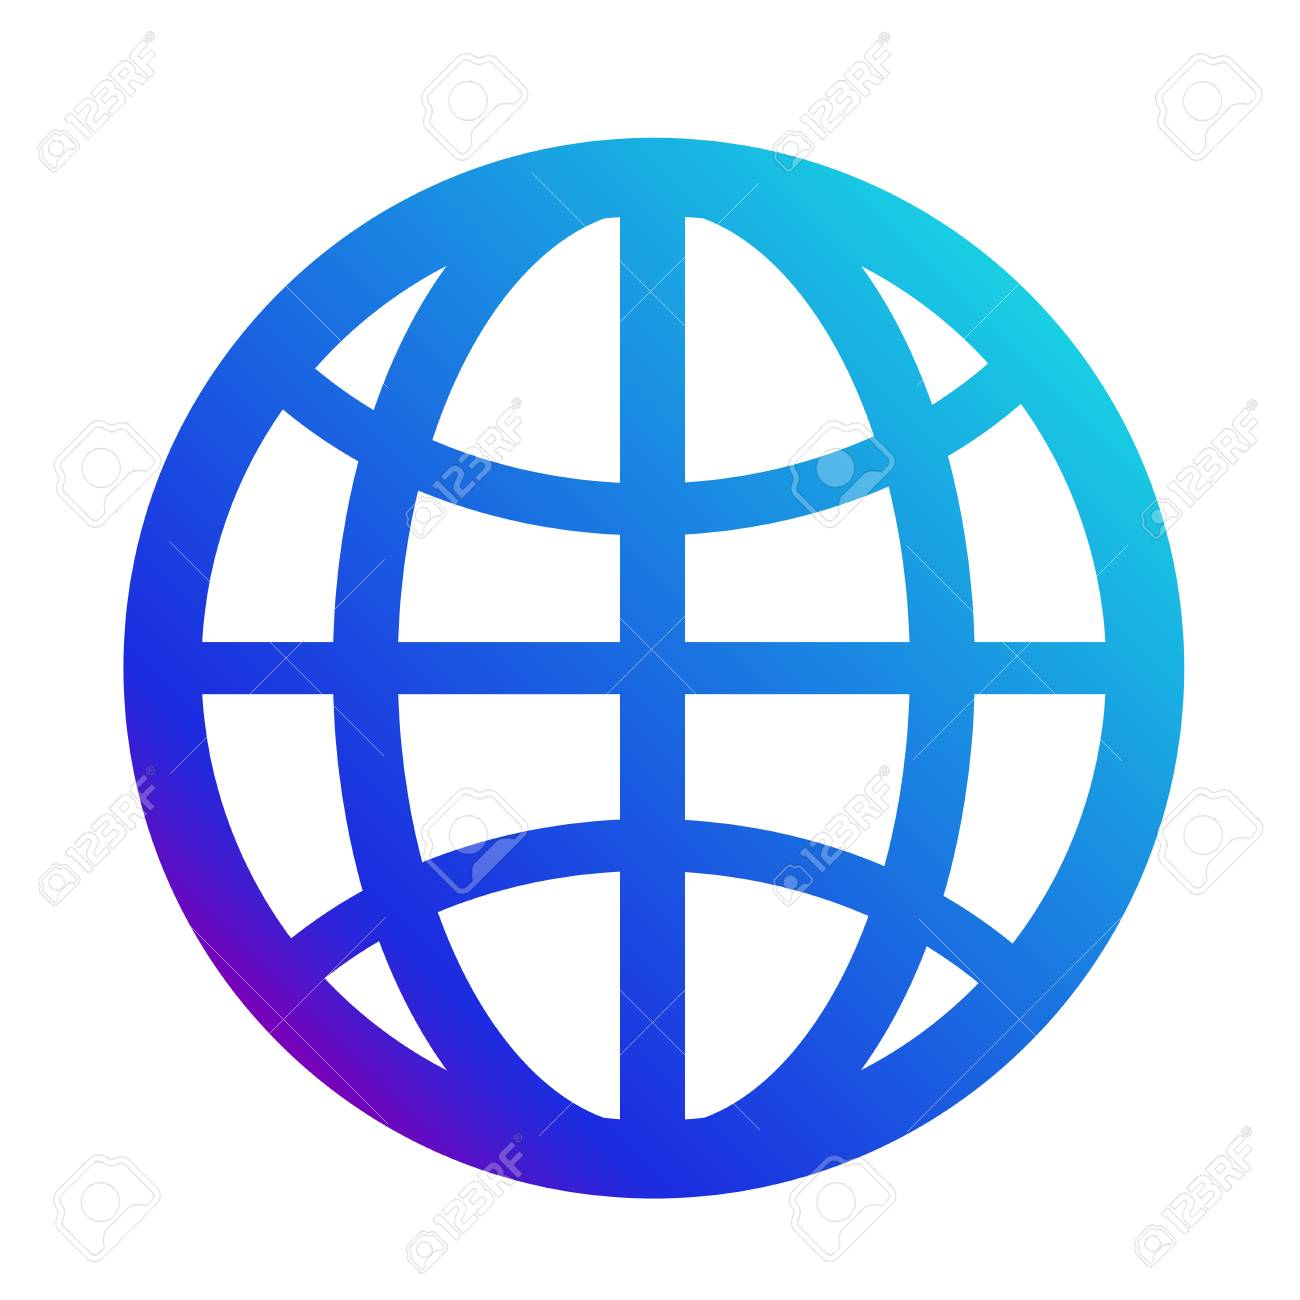 icon internet symbol of the website globe sign royalty free